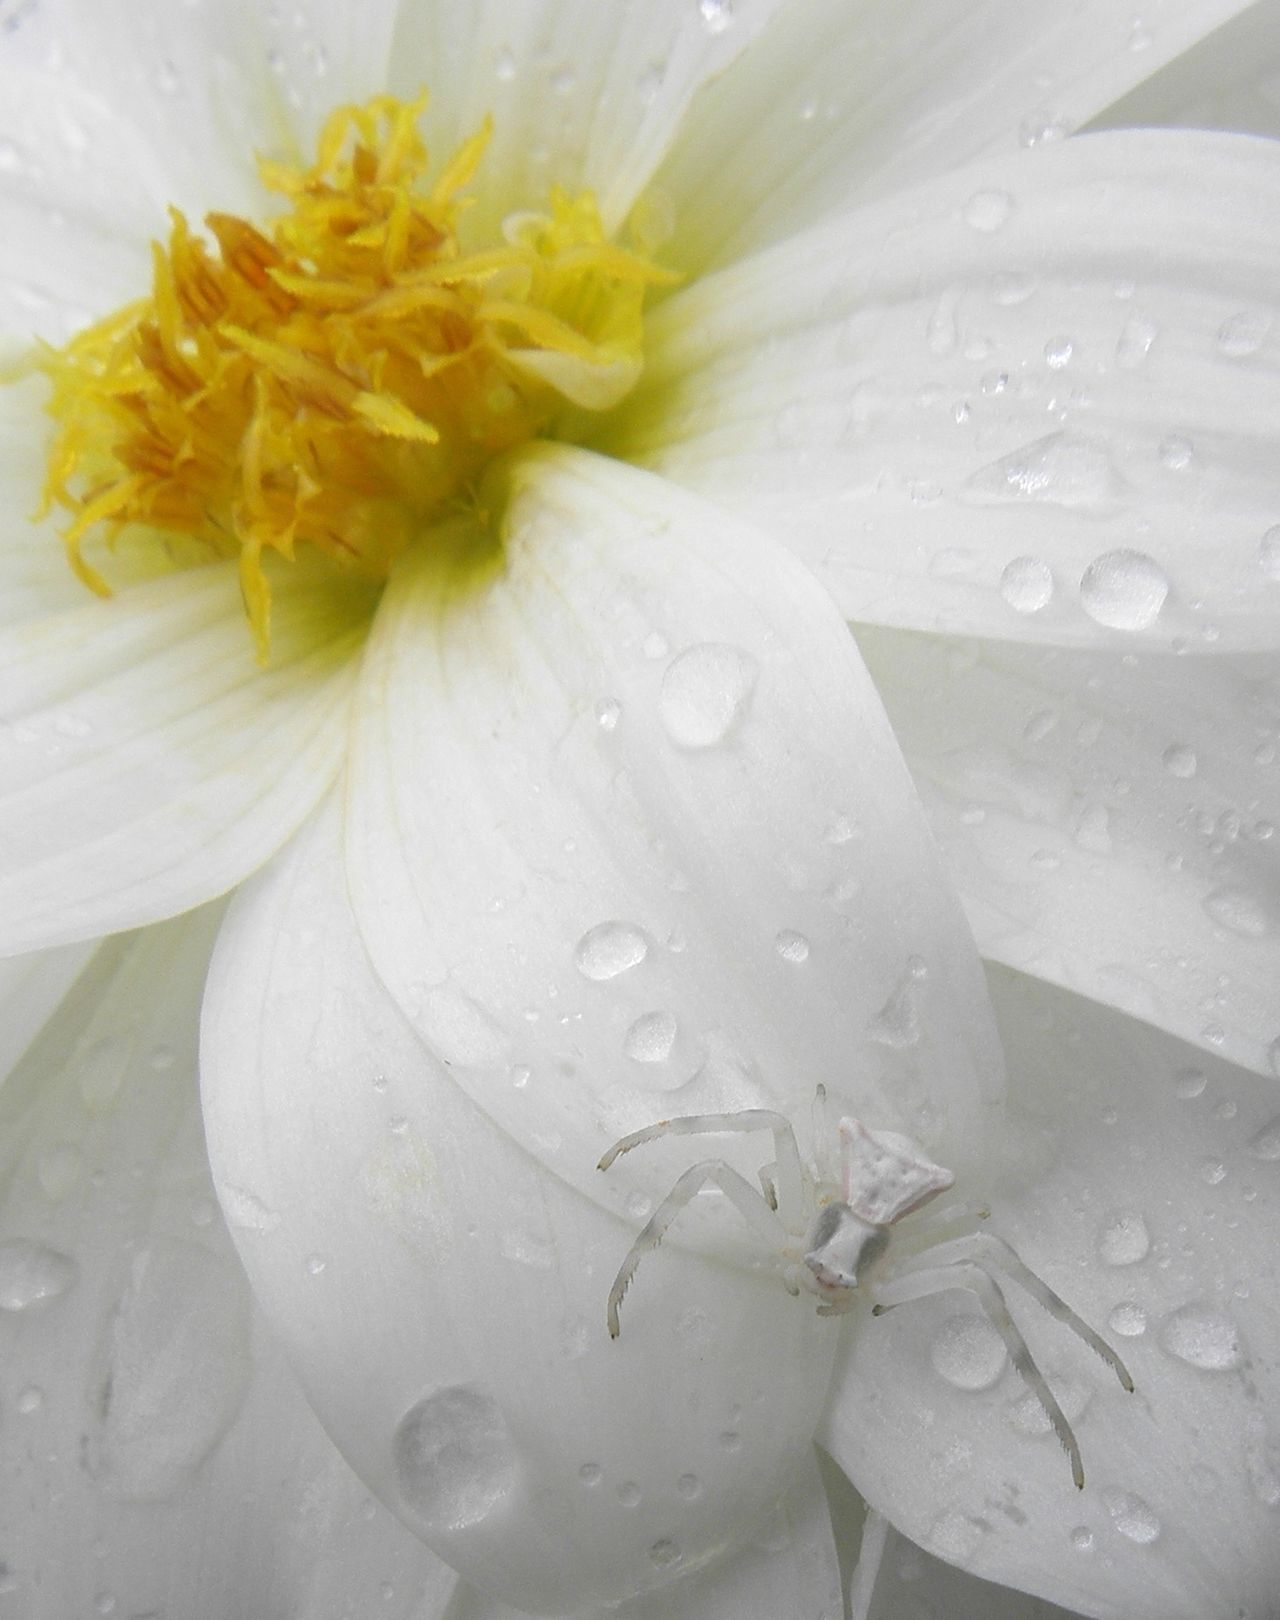 Flower Freshness Petal Flower Head Nature Beauty In Nature Wet Water Close-up Drop No People Dew Plant White Background Crab Spider Macro Total White White Dahlia Mimetism Yellow Outdoors Purity Day No Filter EyeEmNewHere